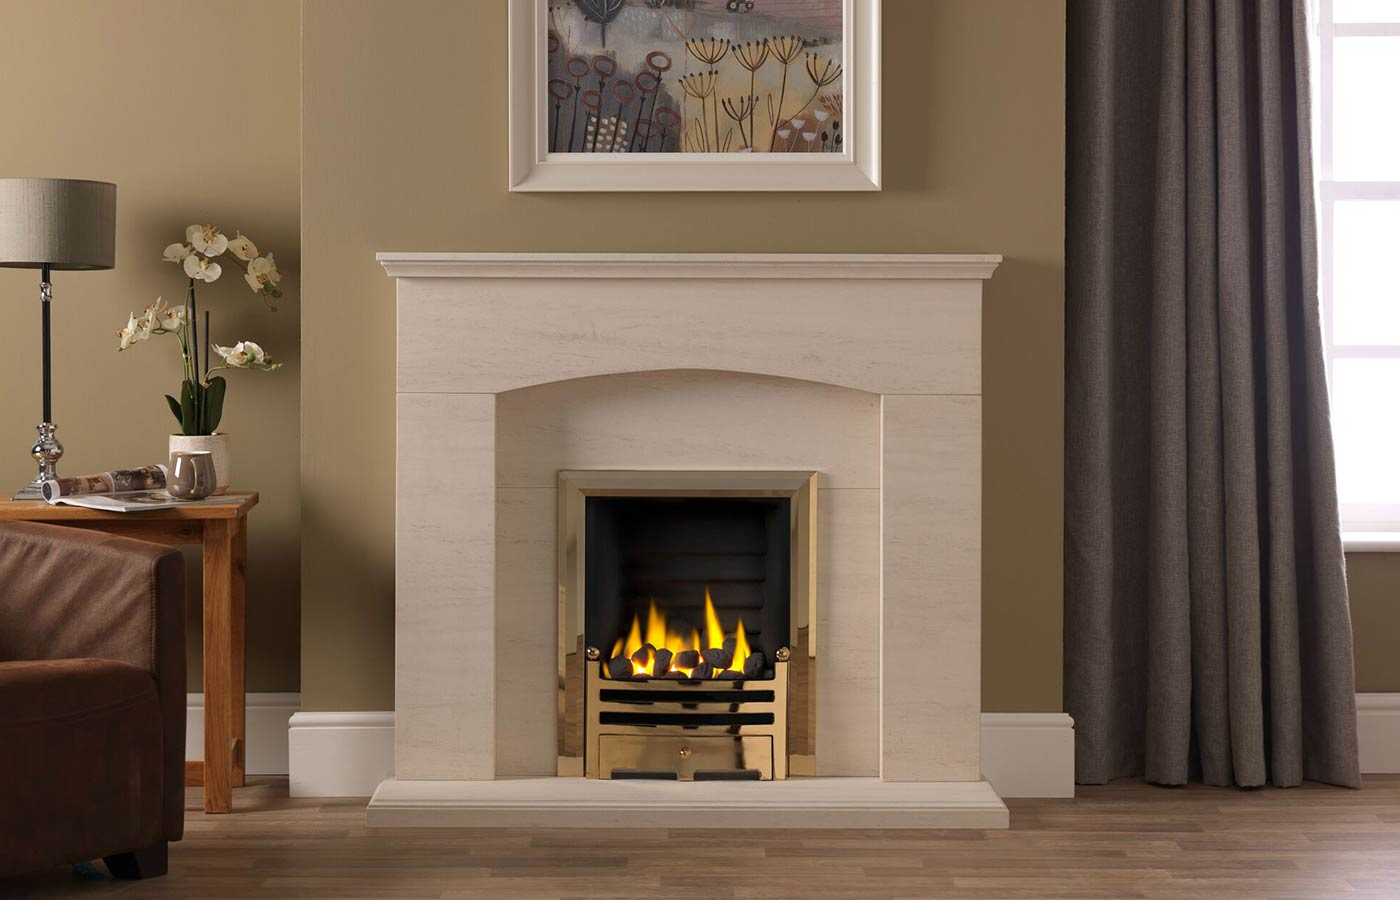 Cartmel Fireplace Suite In Portuguese Limestone with Gallery Bauhaus Antique Brass with Decorative Gas Fire